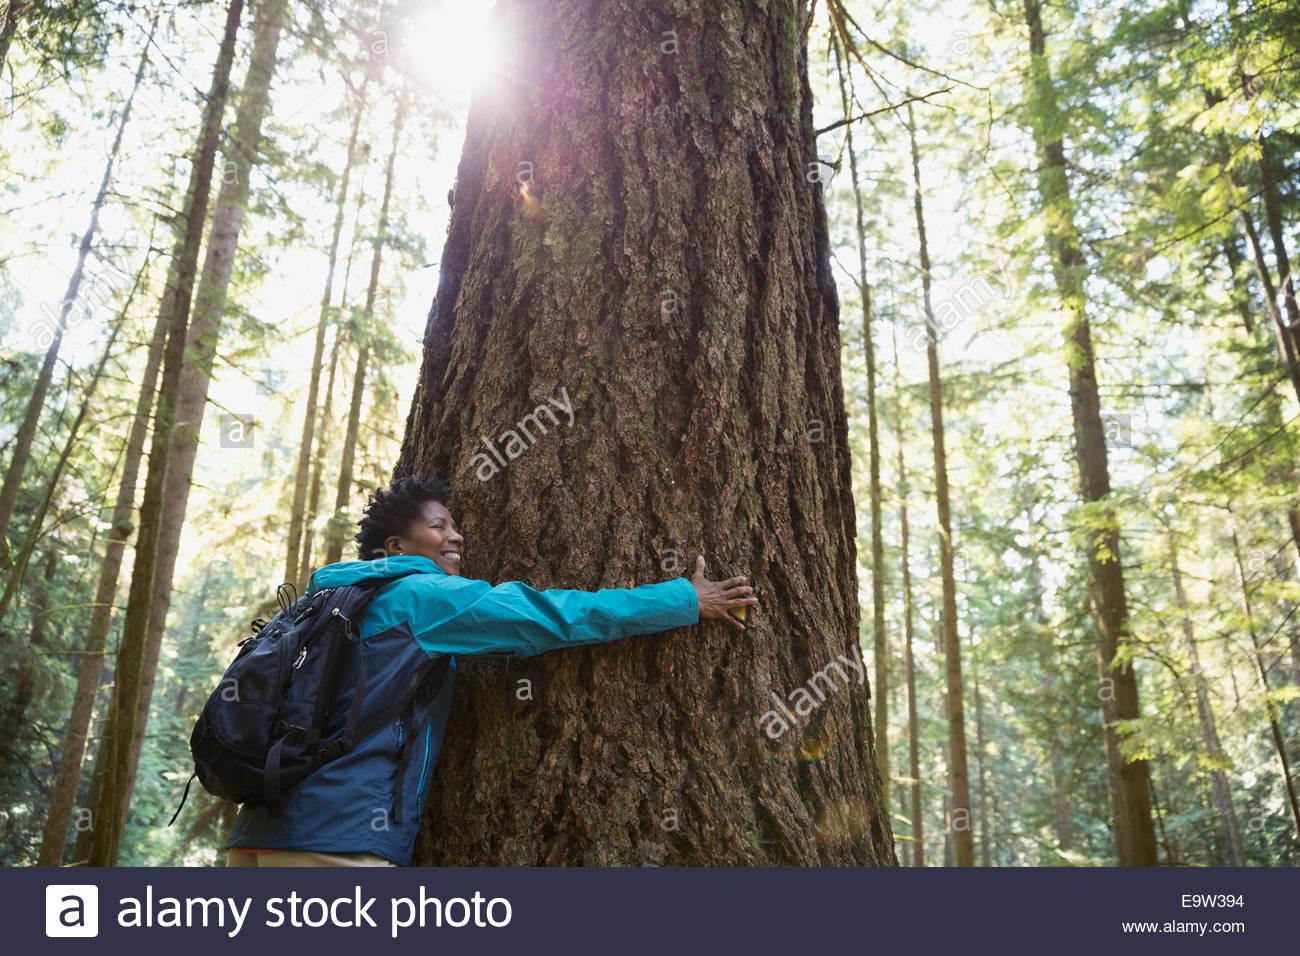 Woman hugging tree in sunny woods Photo Stock